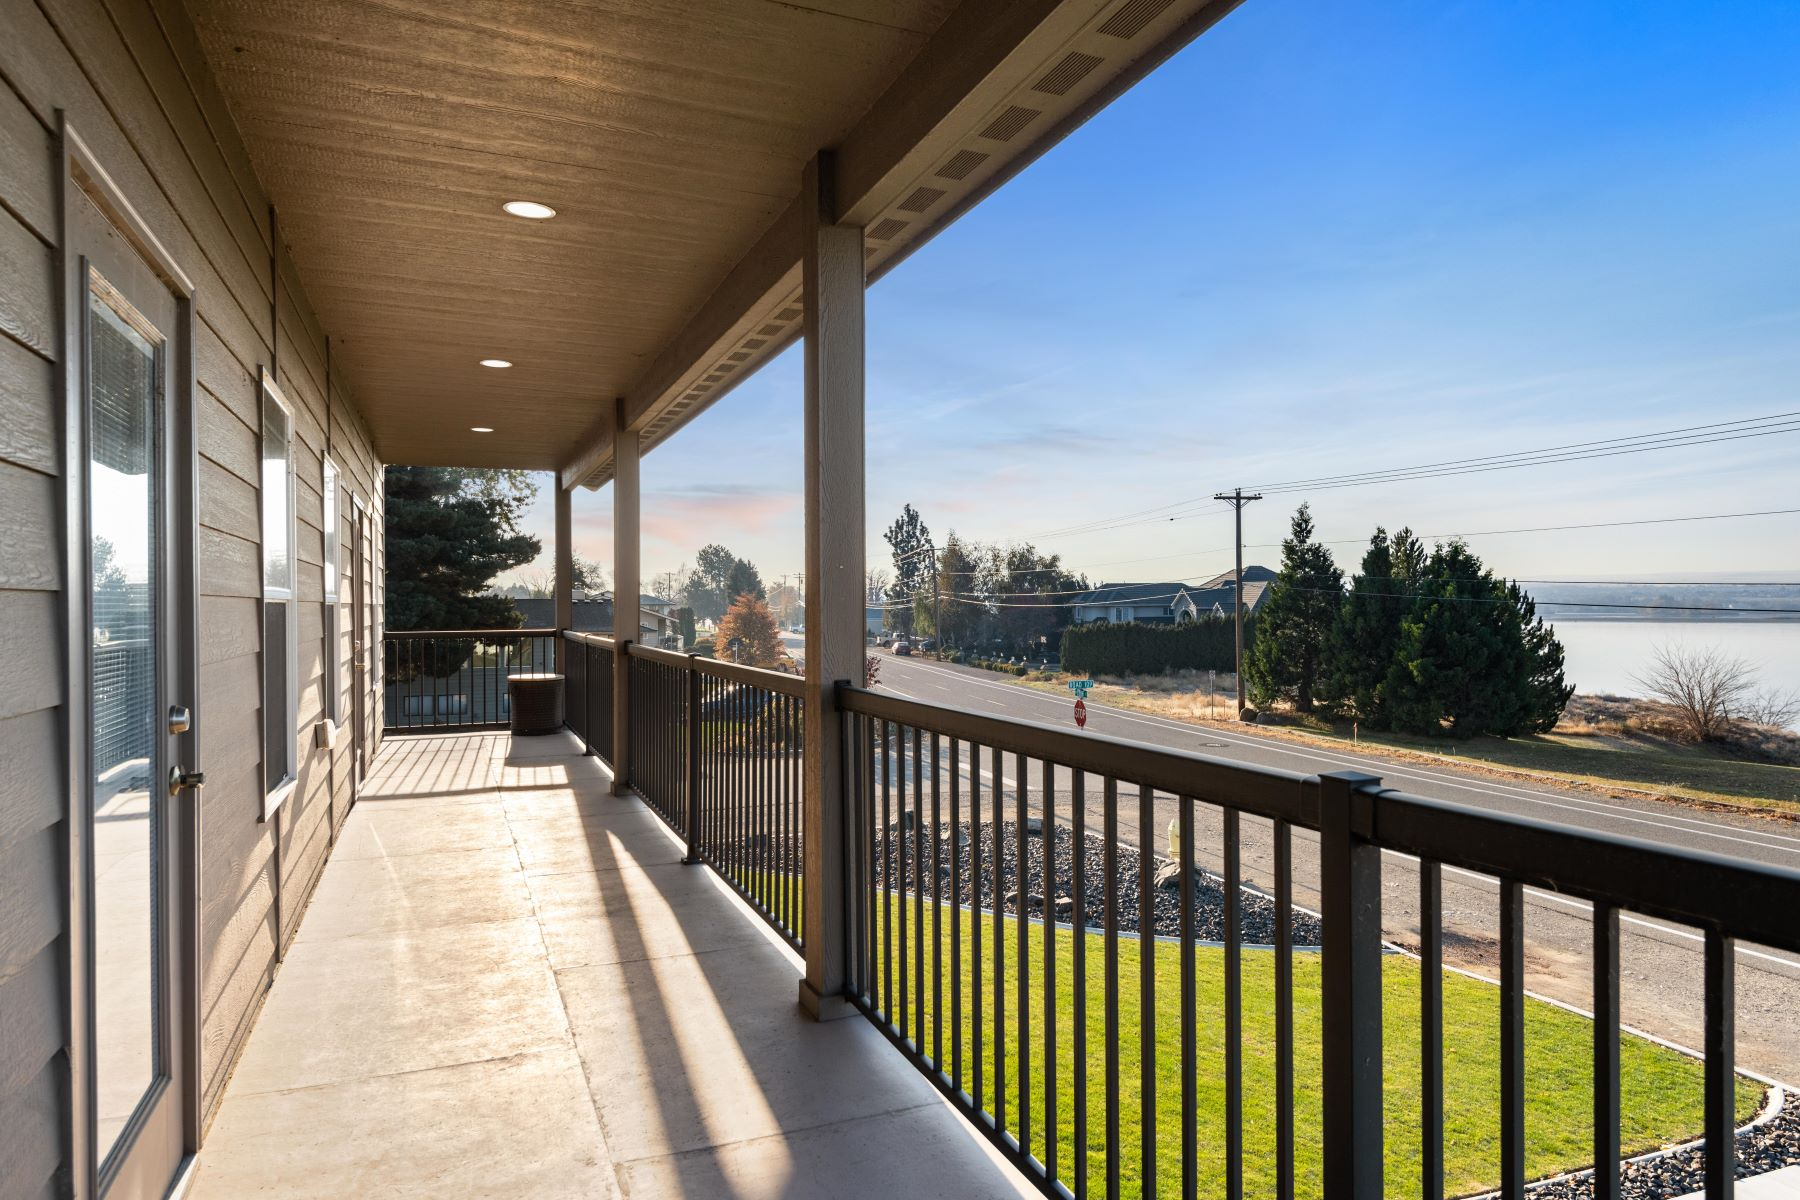 Single Family Homes for Sale at Stunning River views! 10901 Court Street Pasco, Washington 99301 United States